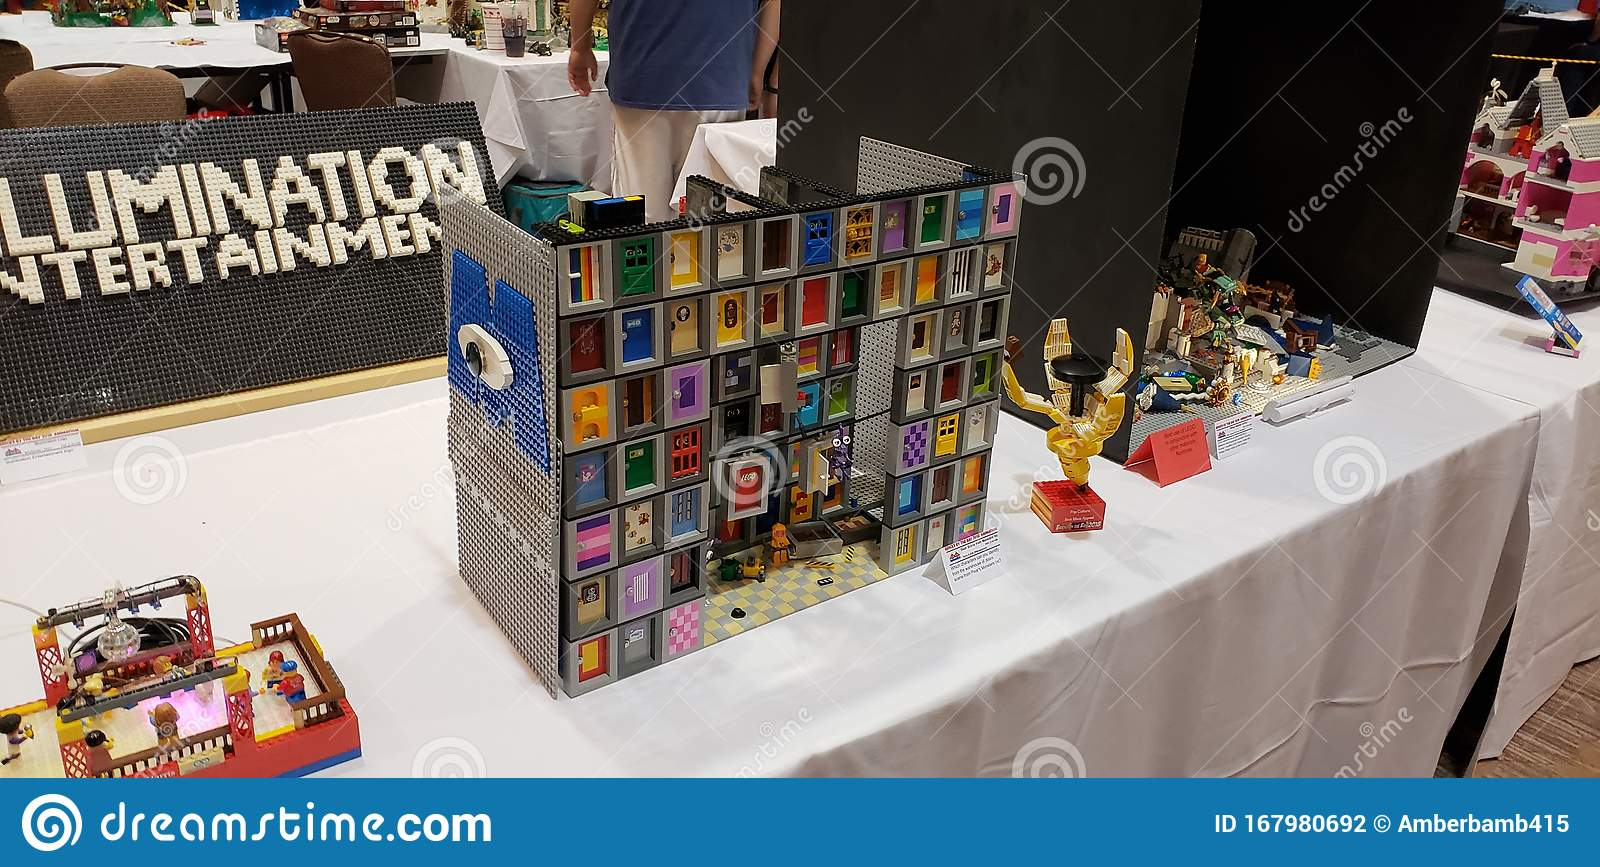 Monsters Inc Doors Pixar Disney Lego Convention Editorial Photography Image Of Doors Convention 167980692